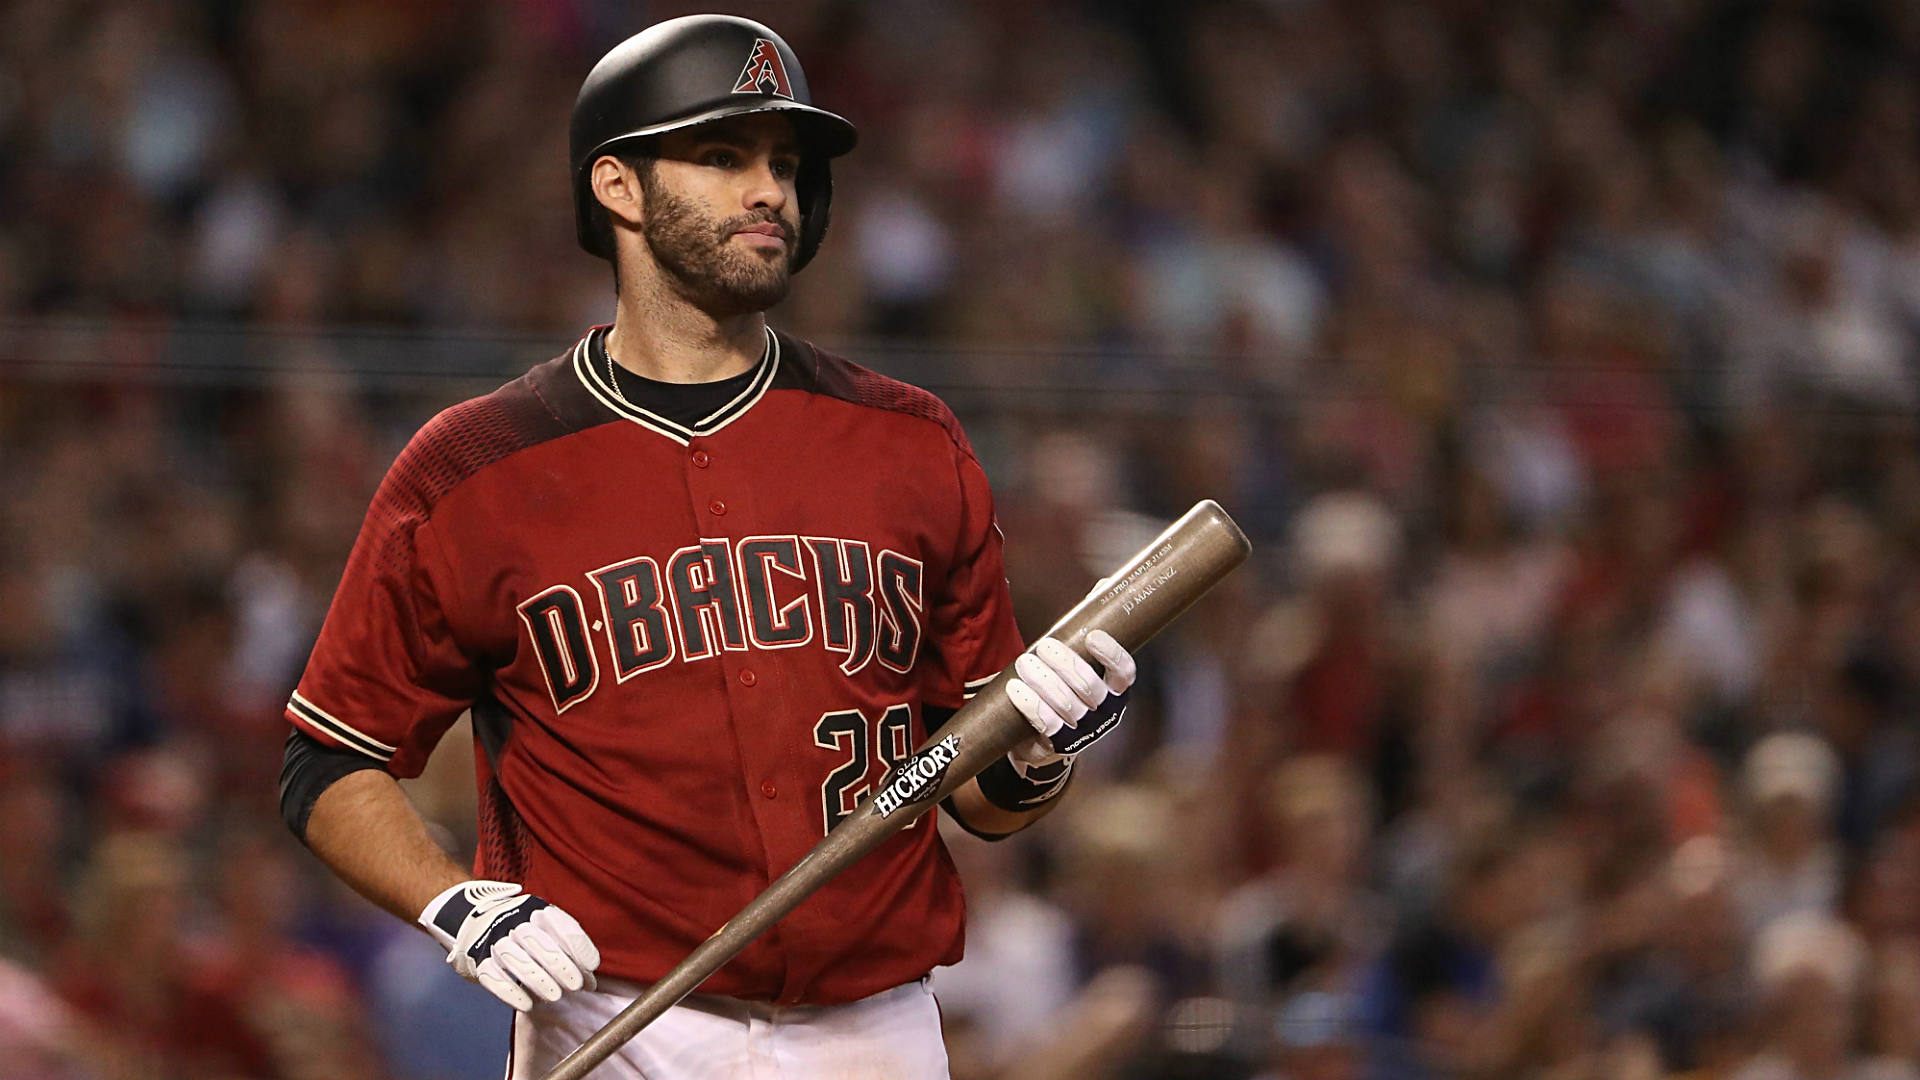 reputable site 8c2af 43ecf MLB free agents: Diamondbacks look foolish for missing out ...